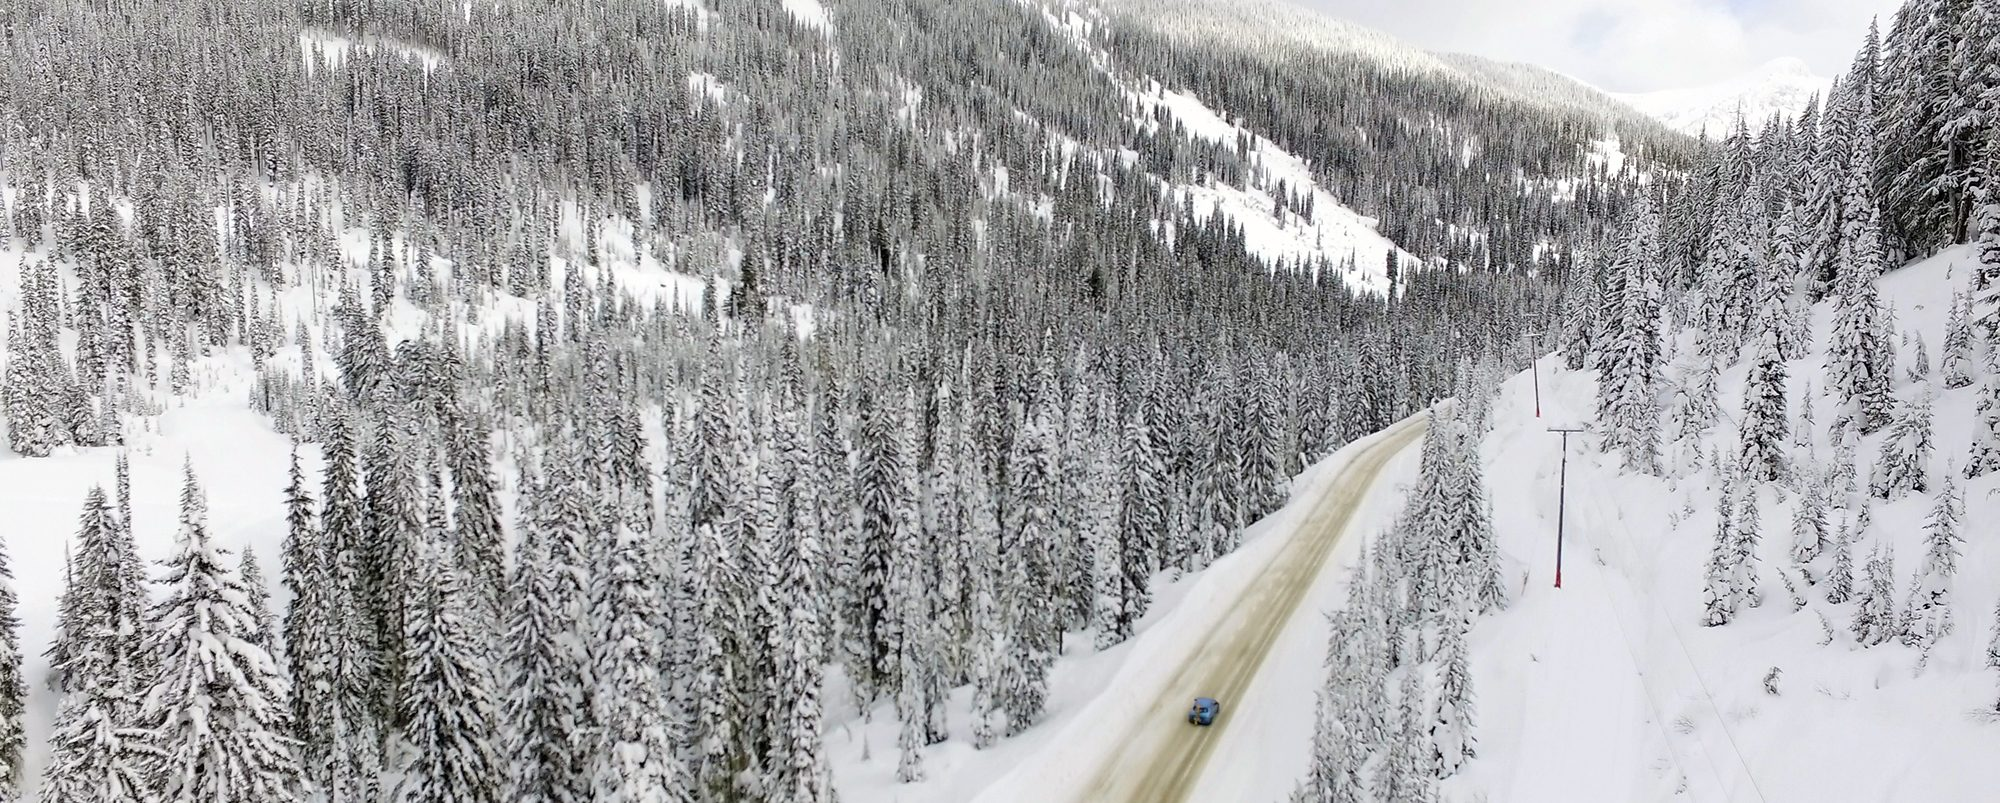 EV driving up a snow packed road